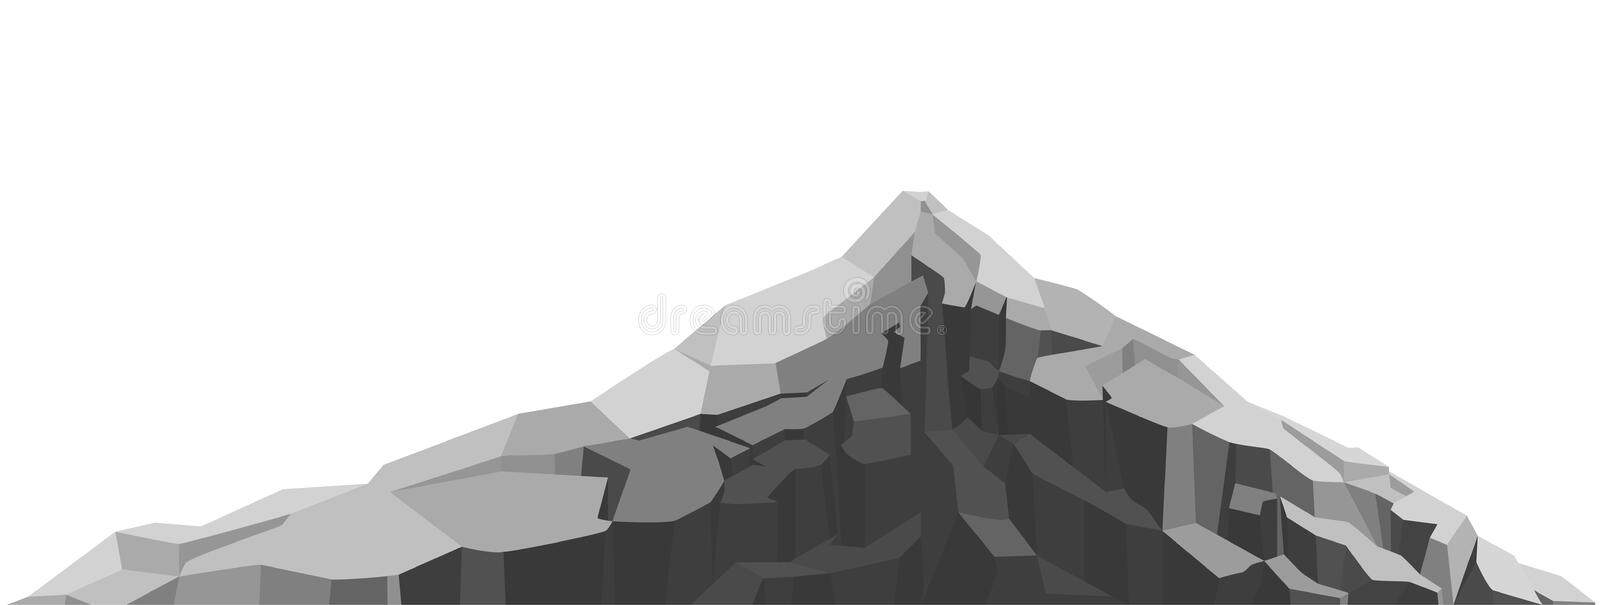 Mountain of large rock and stone. Boulders, graphite coal. vector illustration